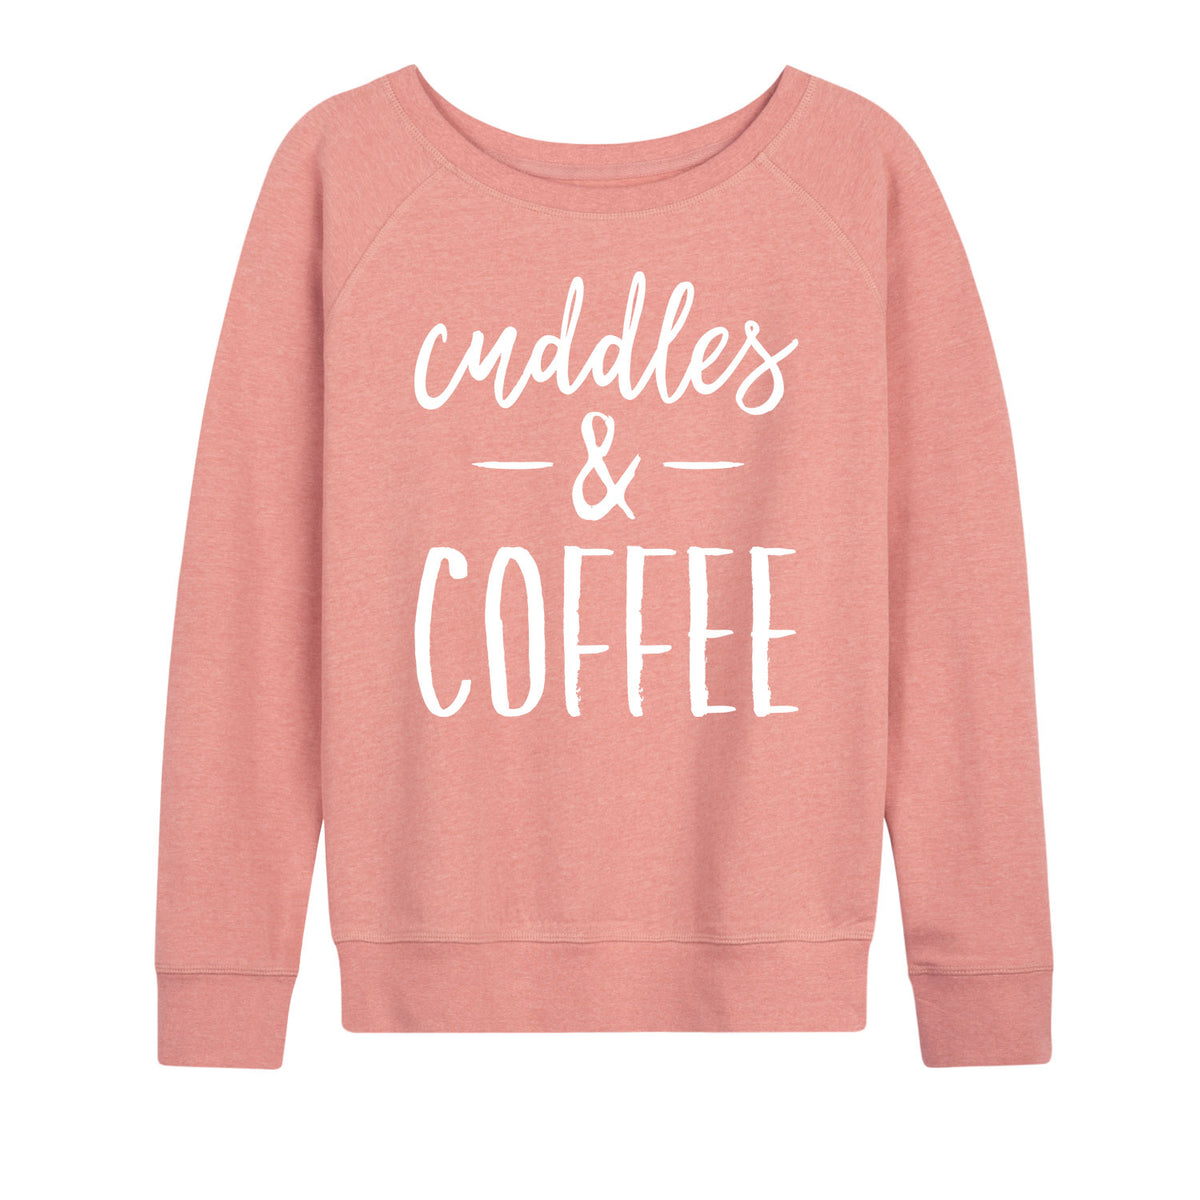 Cuddles And Coffee - Women's Slouchy